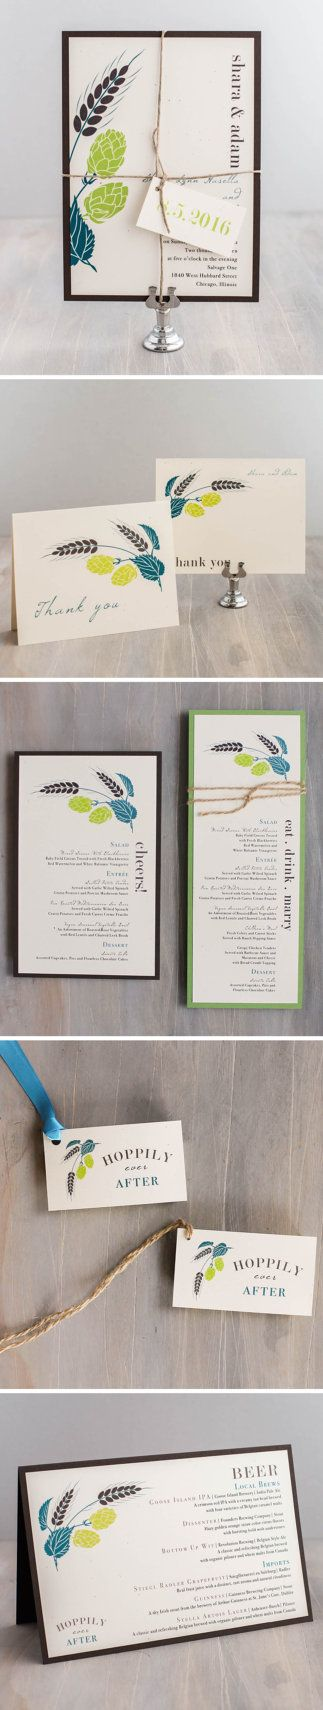 Hops Love! Brewery inspired wedding invites. Customize with your own wedding colors: www.beaconln.com